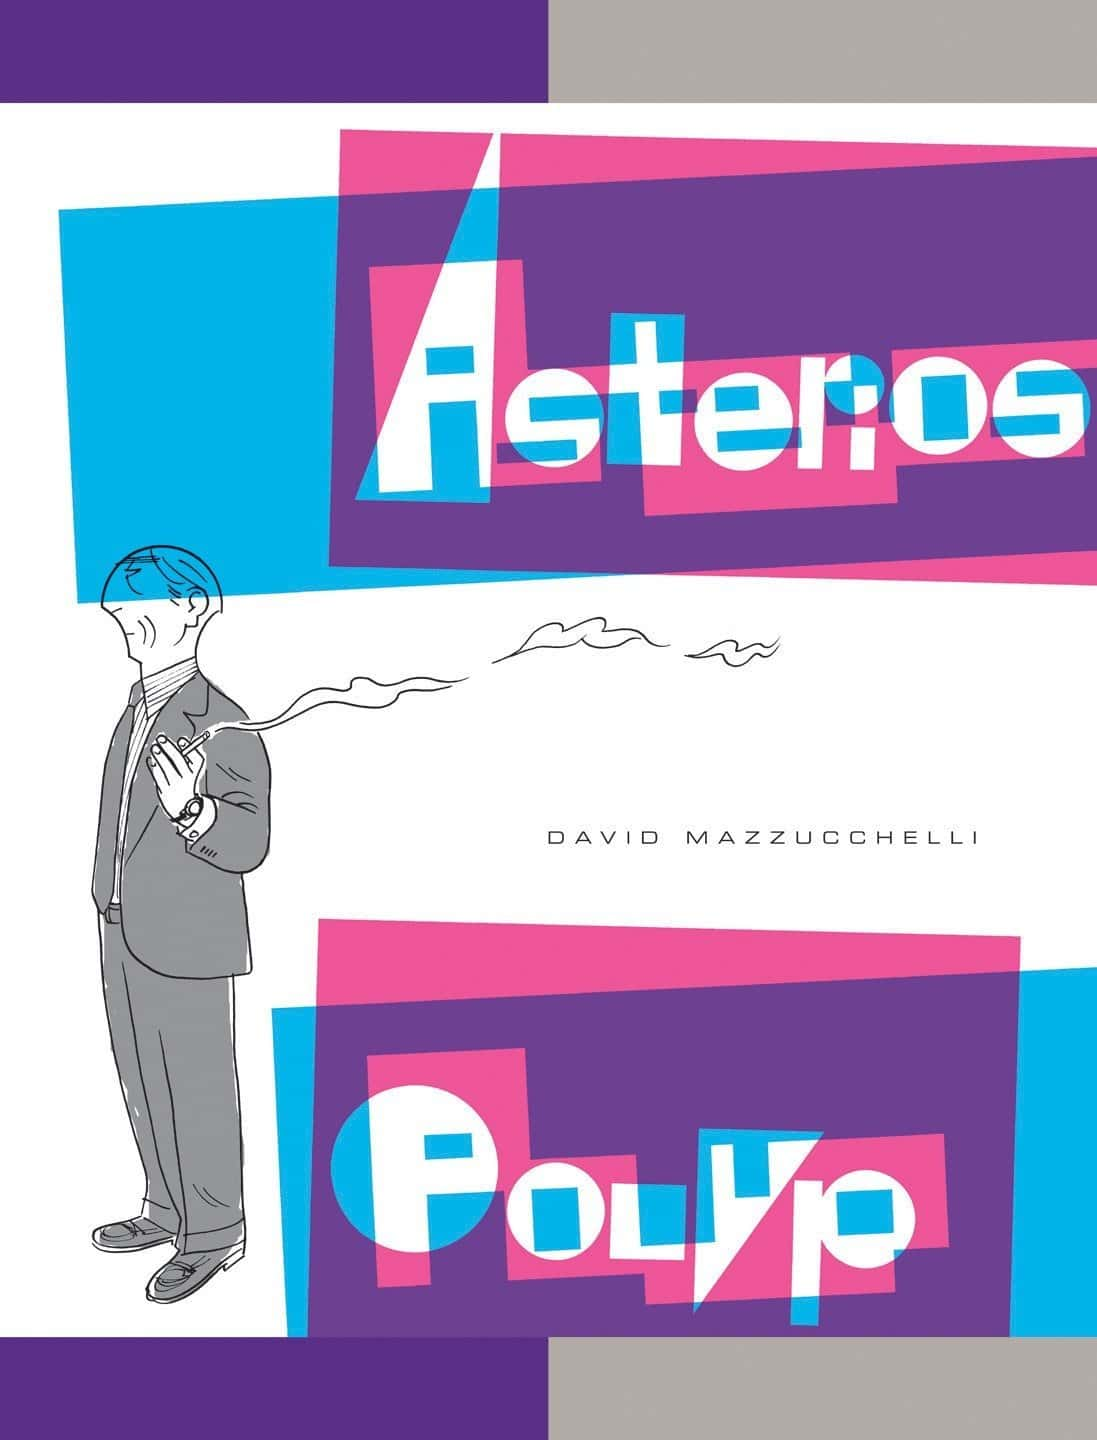 Comparative Essay of Asterios Polyp by David Mazzucchelli